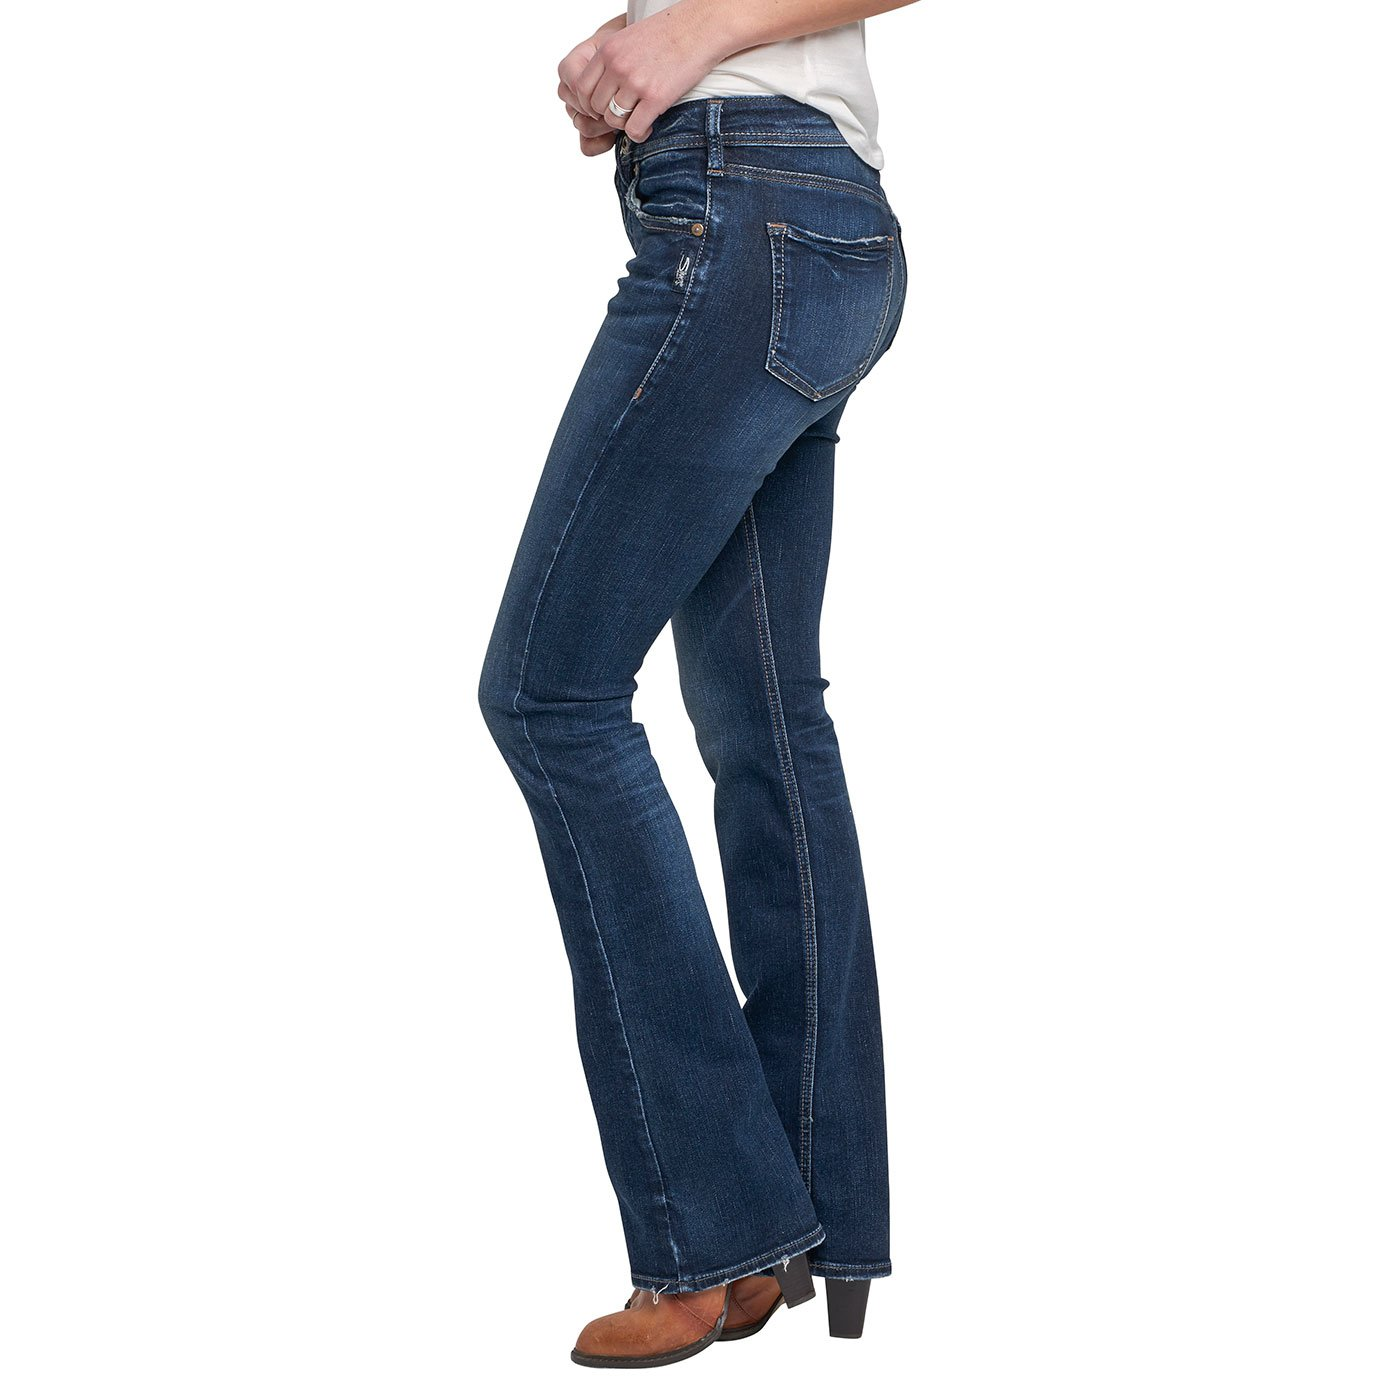 0eb53af0 Amazon.com: Silver Jean's Co. Women's Avery Curvy Fit High Rise Slim ...